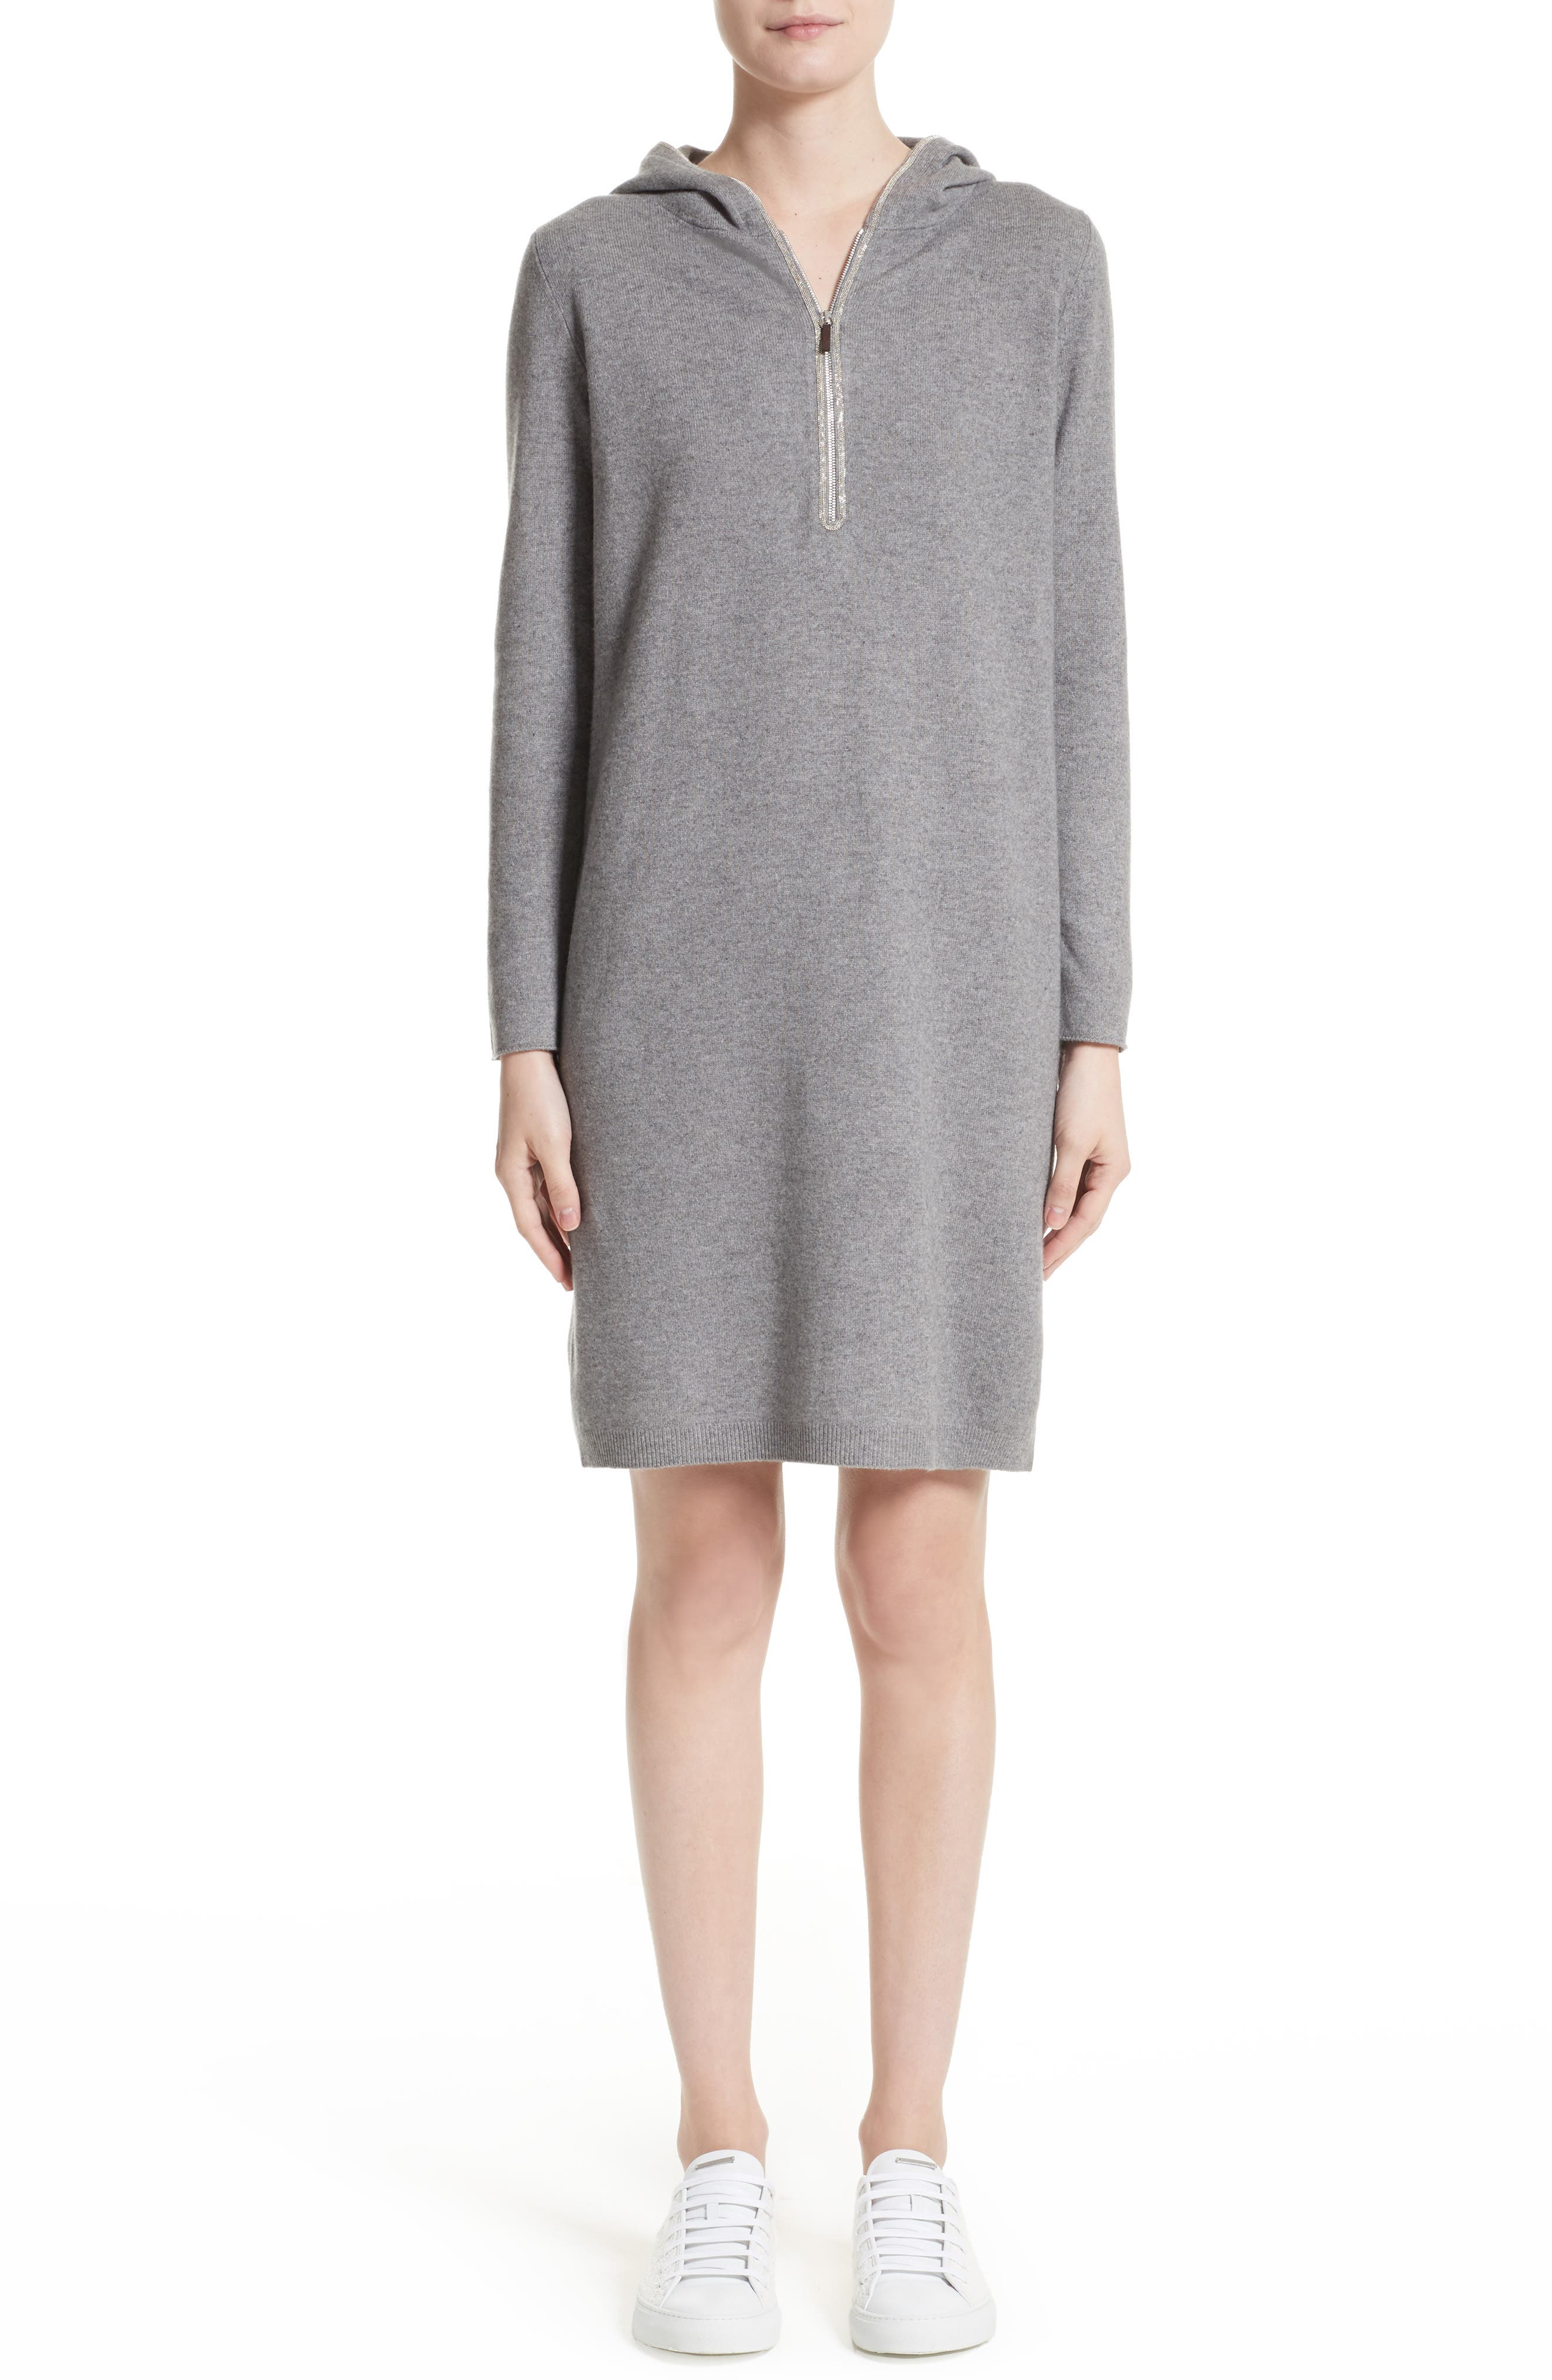 Wool, Silk & Cashmere Hooded Dress,                         Main,                         color, 020